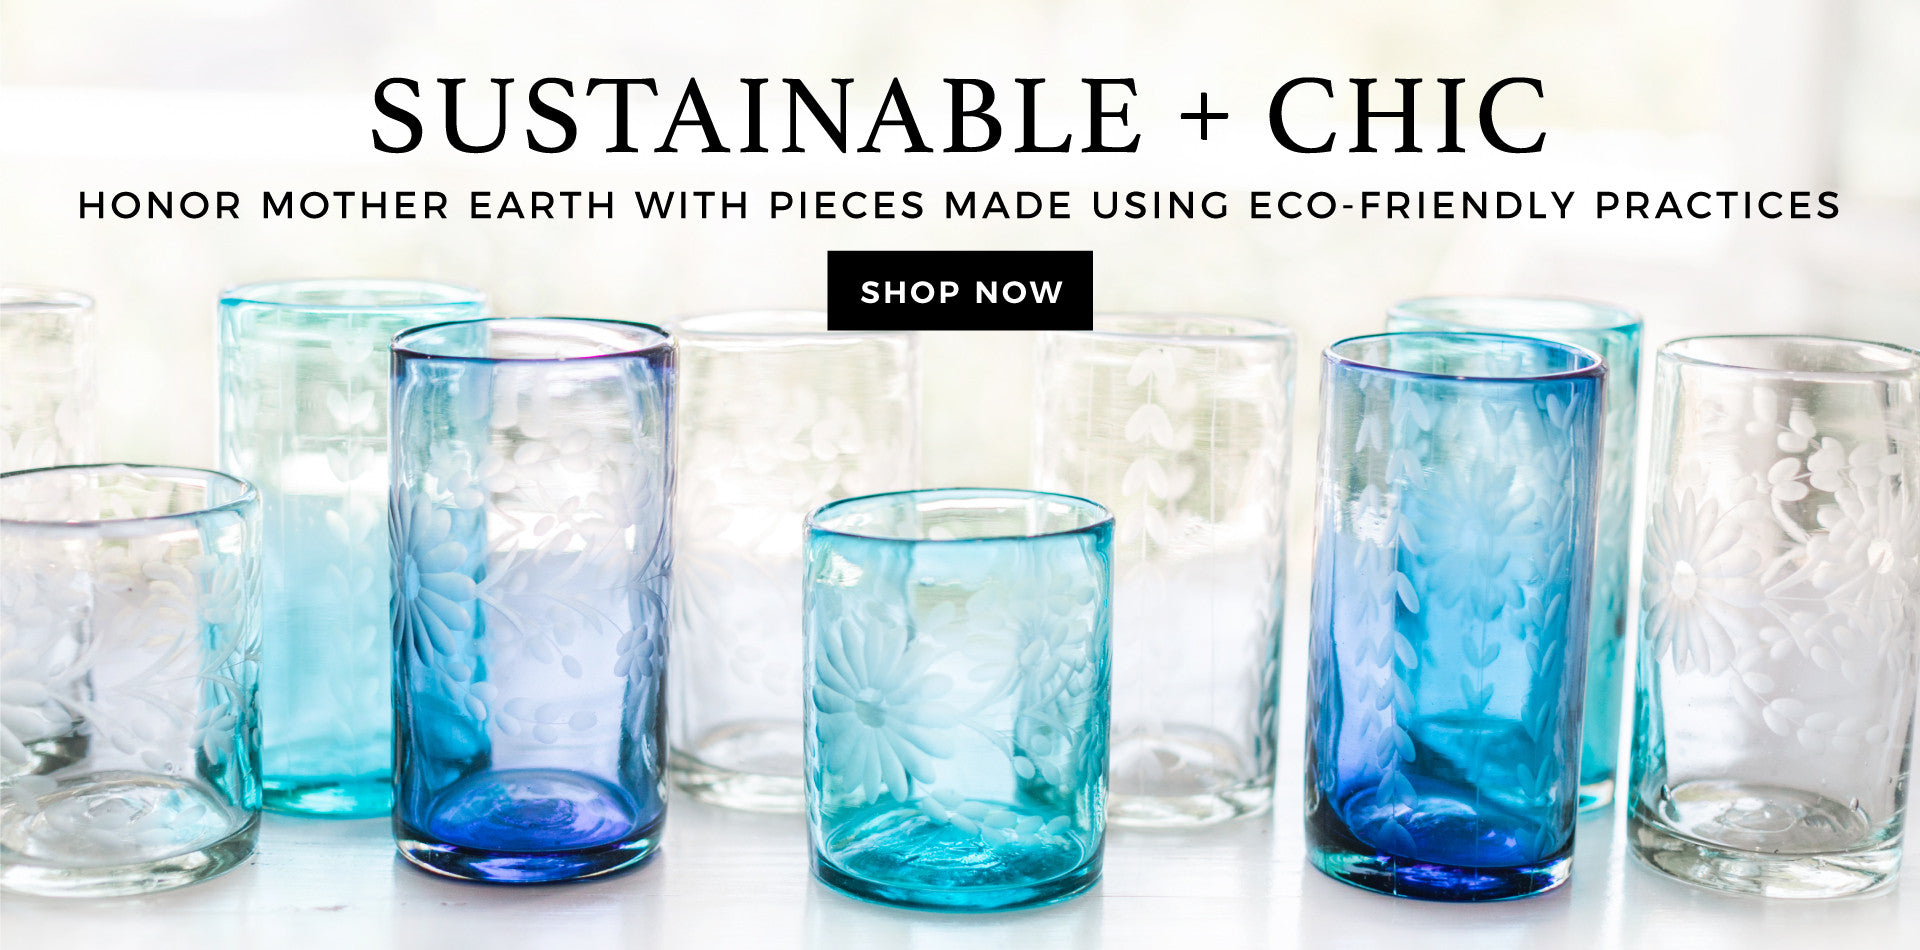 Shop the Eco-Friendly Collection